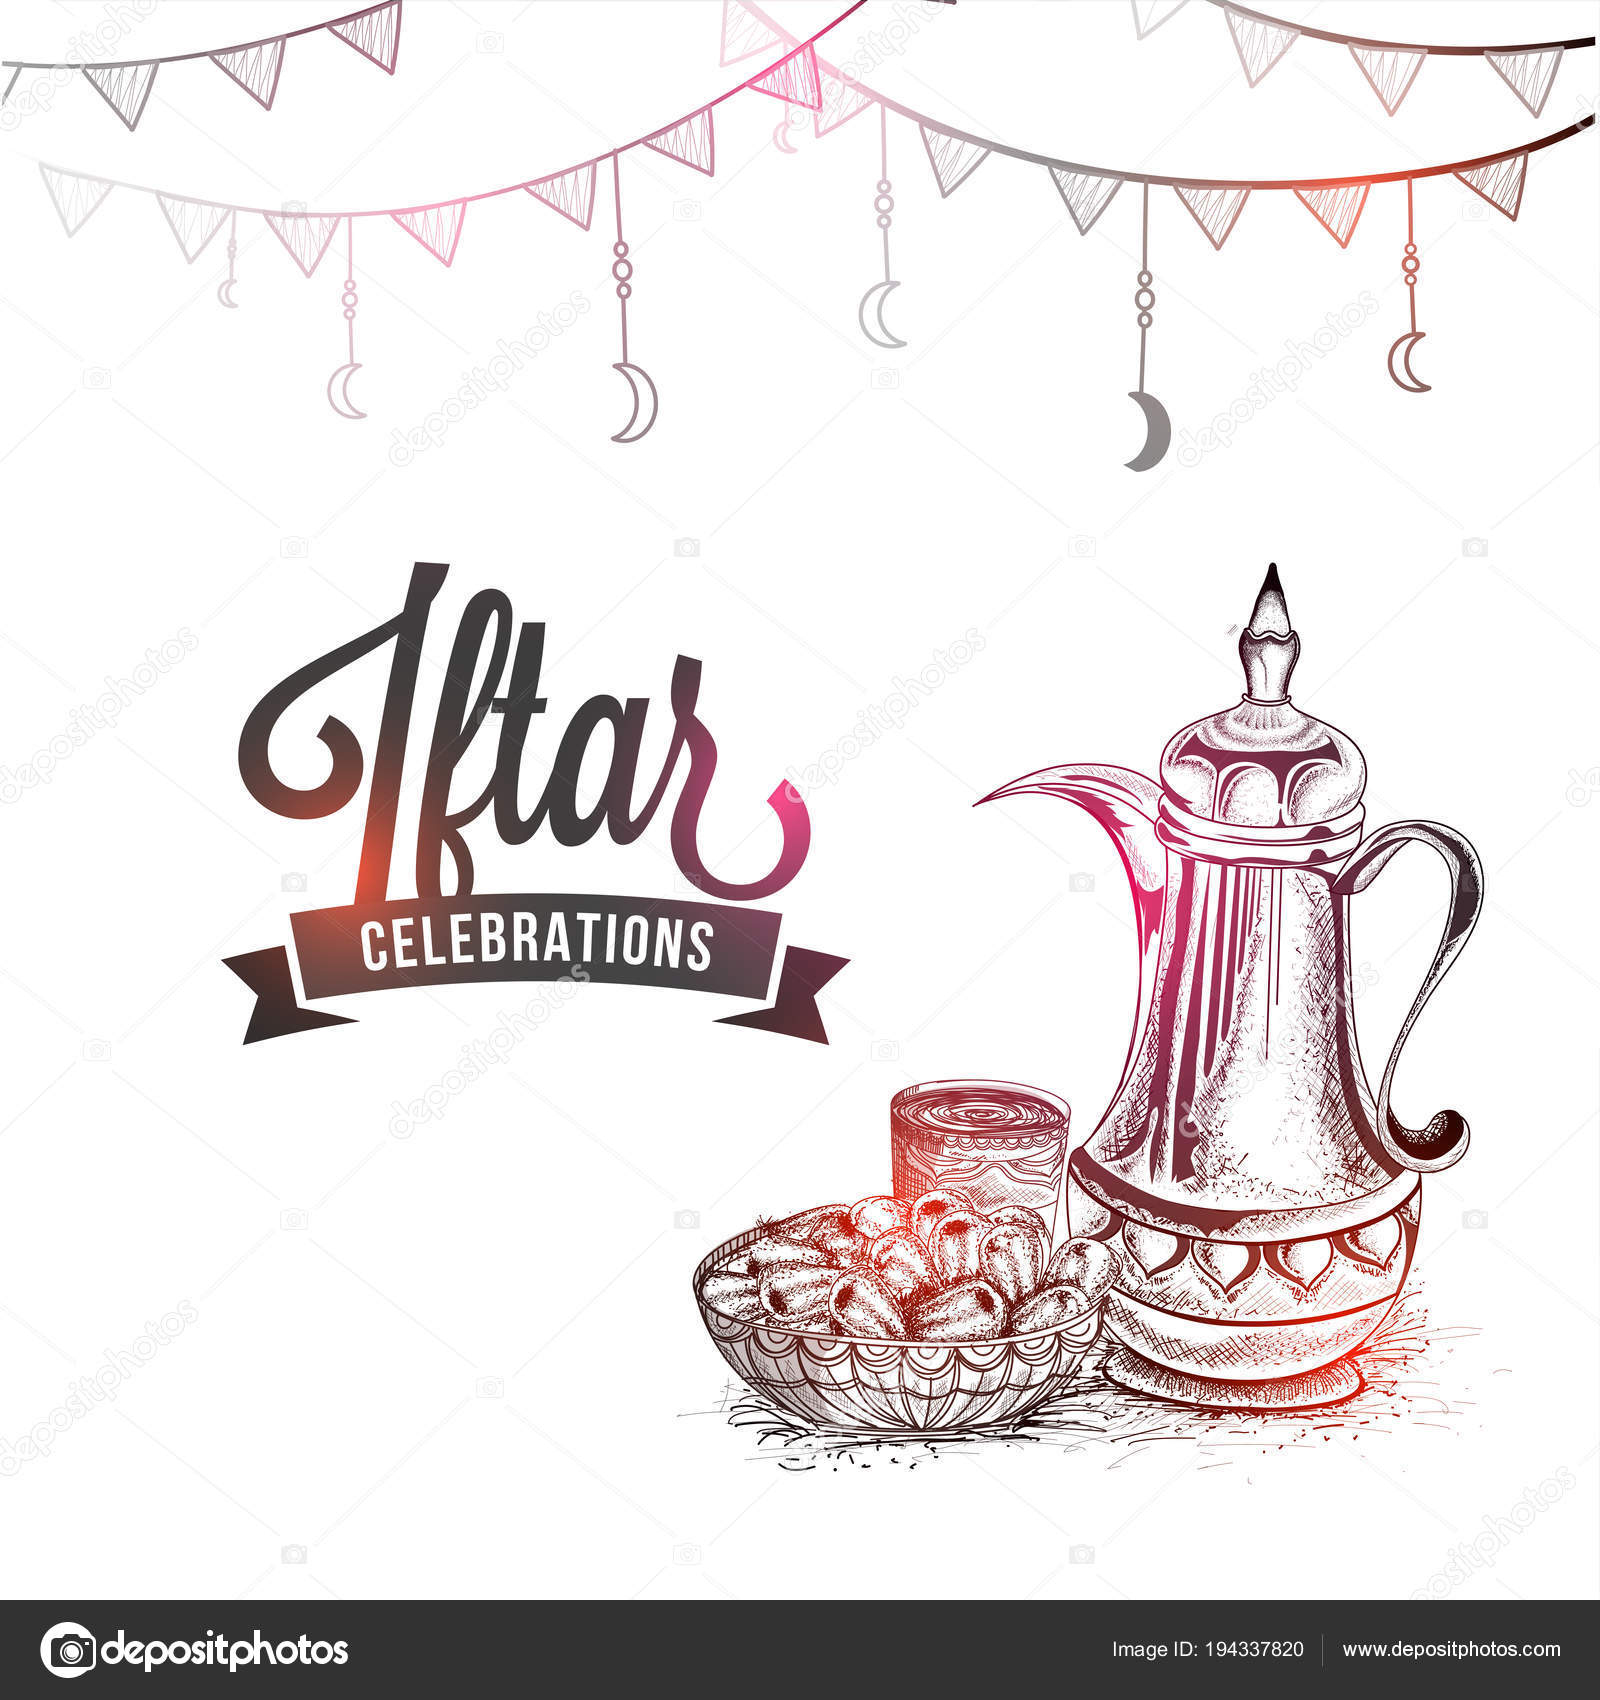 Iftar celebrations concept traditional jug dates stylish text pencil sketch stock vector